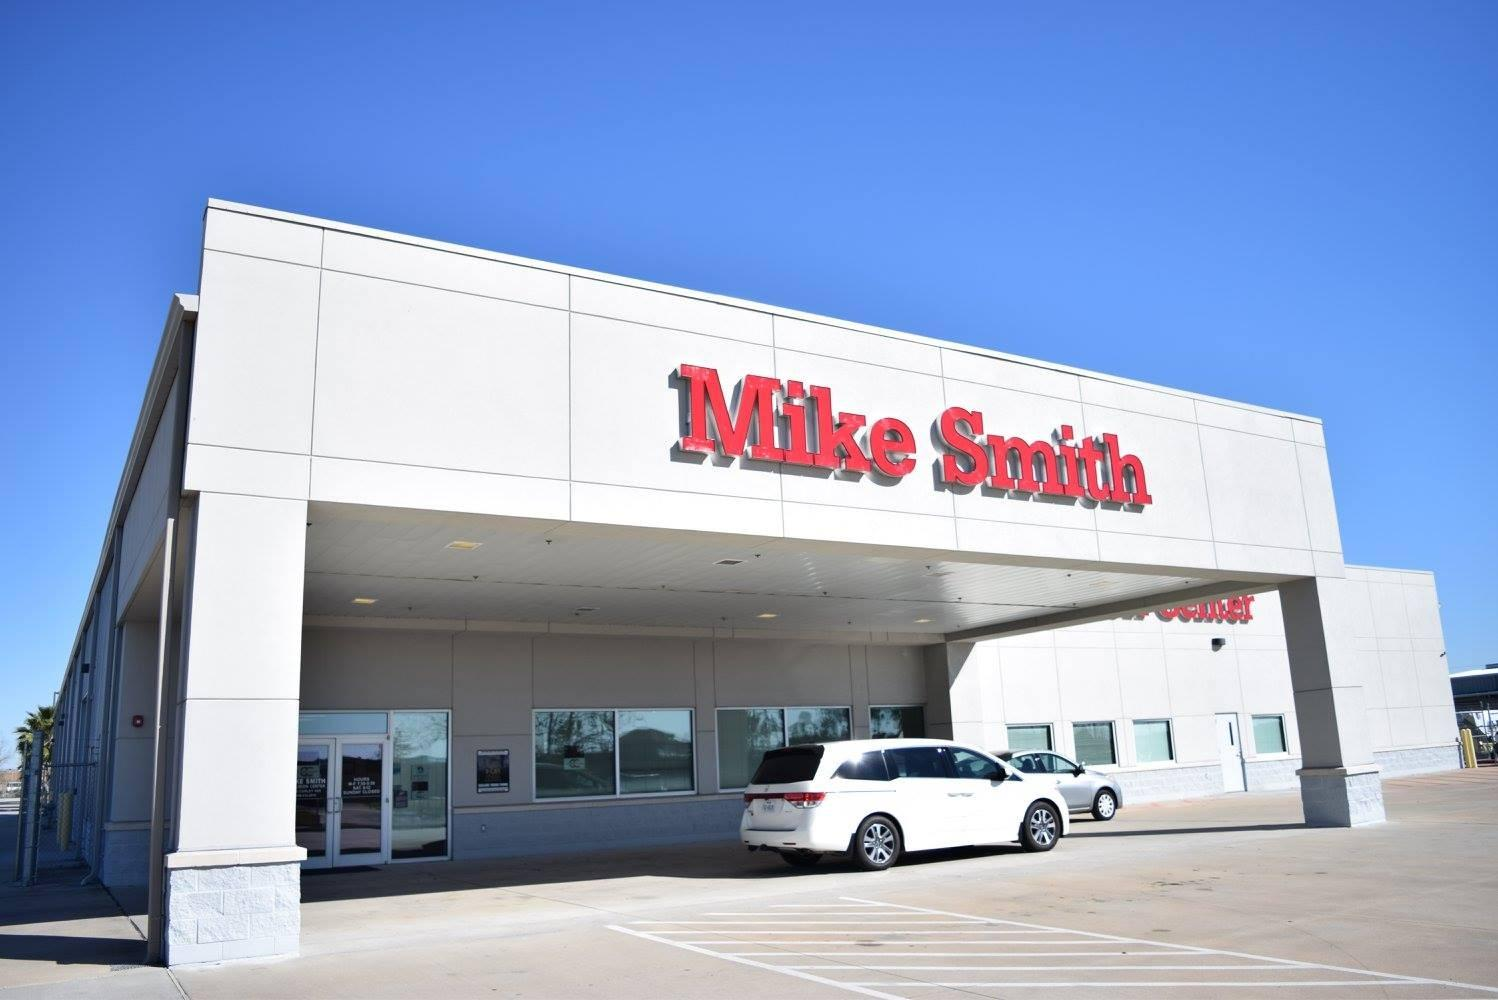 Mike Smith Collision Center image 1